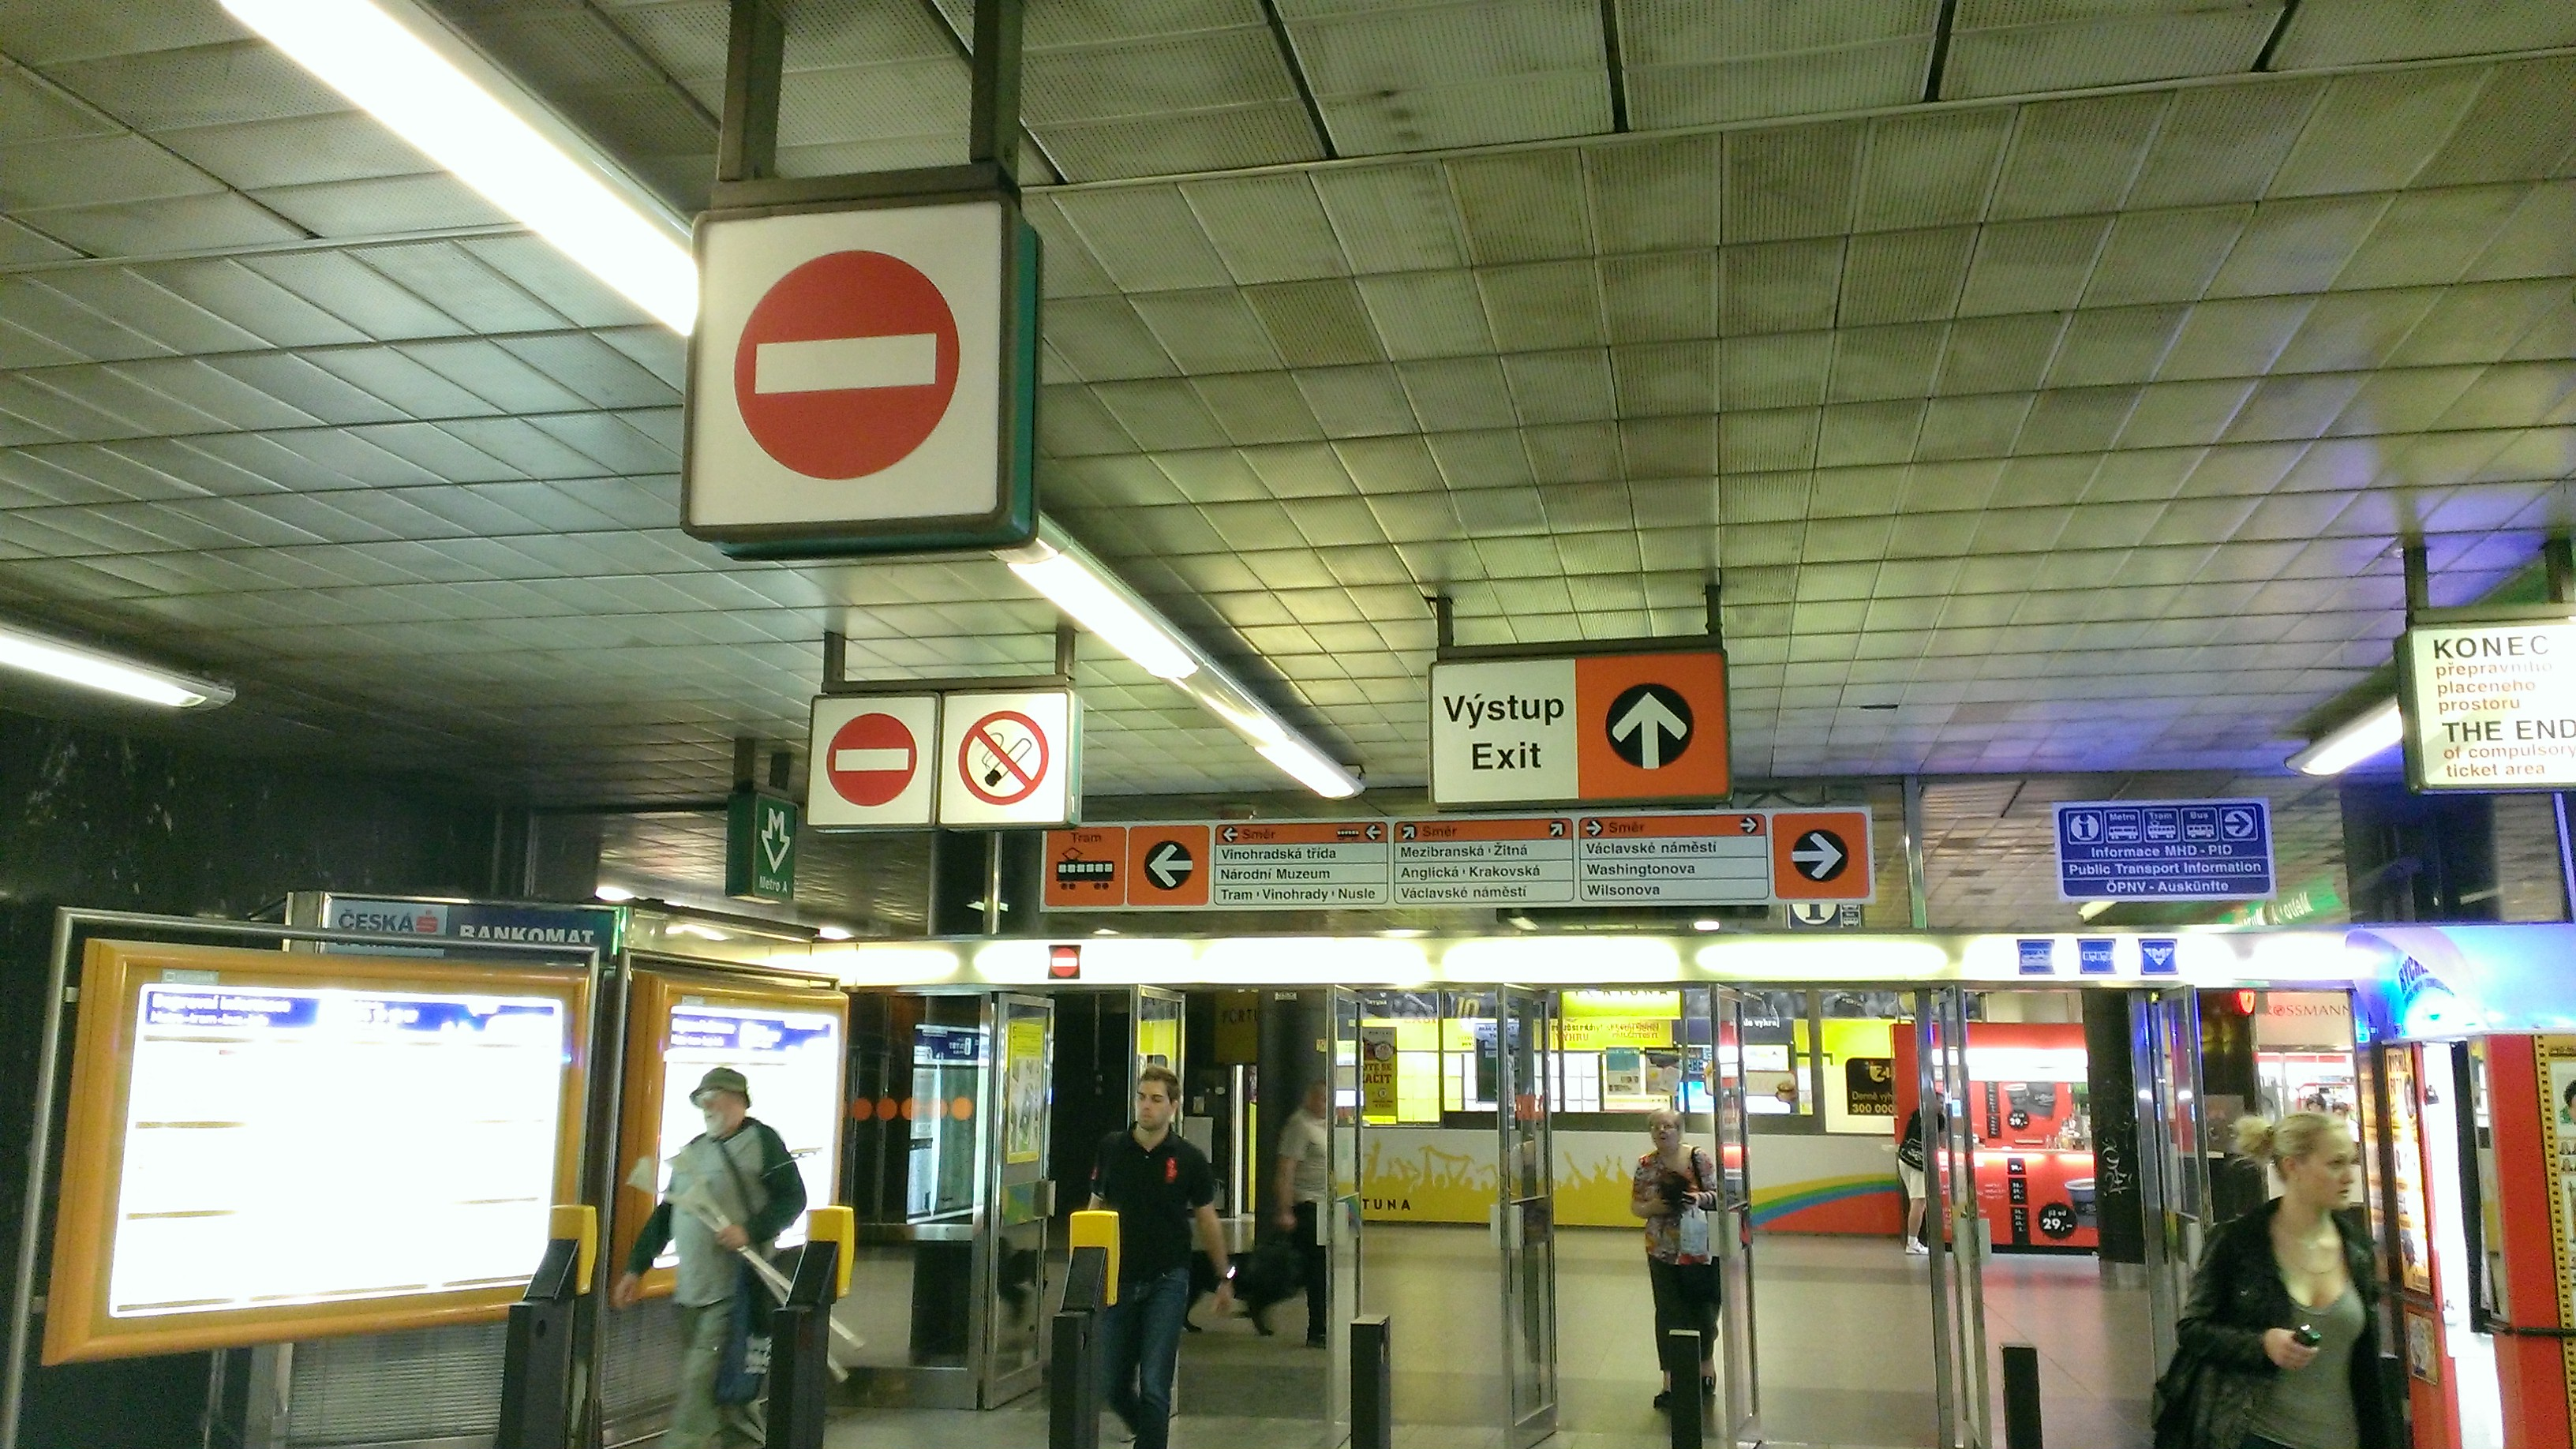 Conflicting Signs in Prague Metro